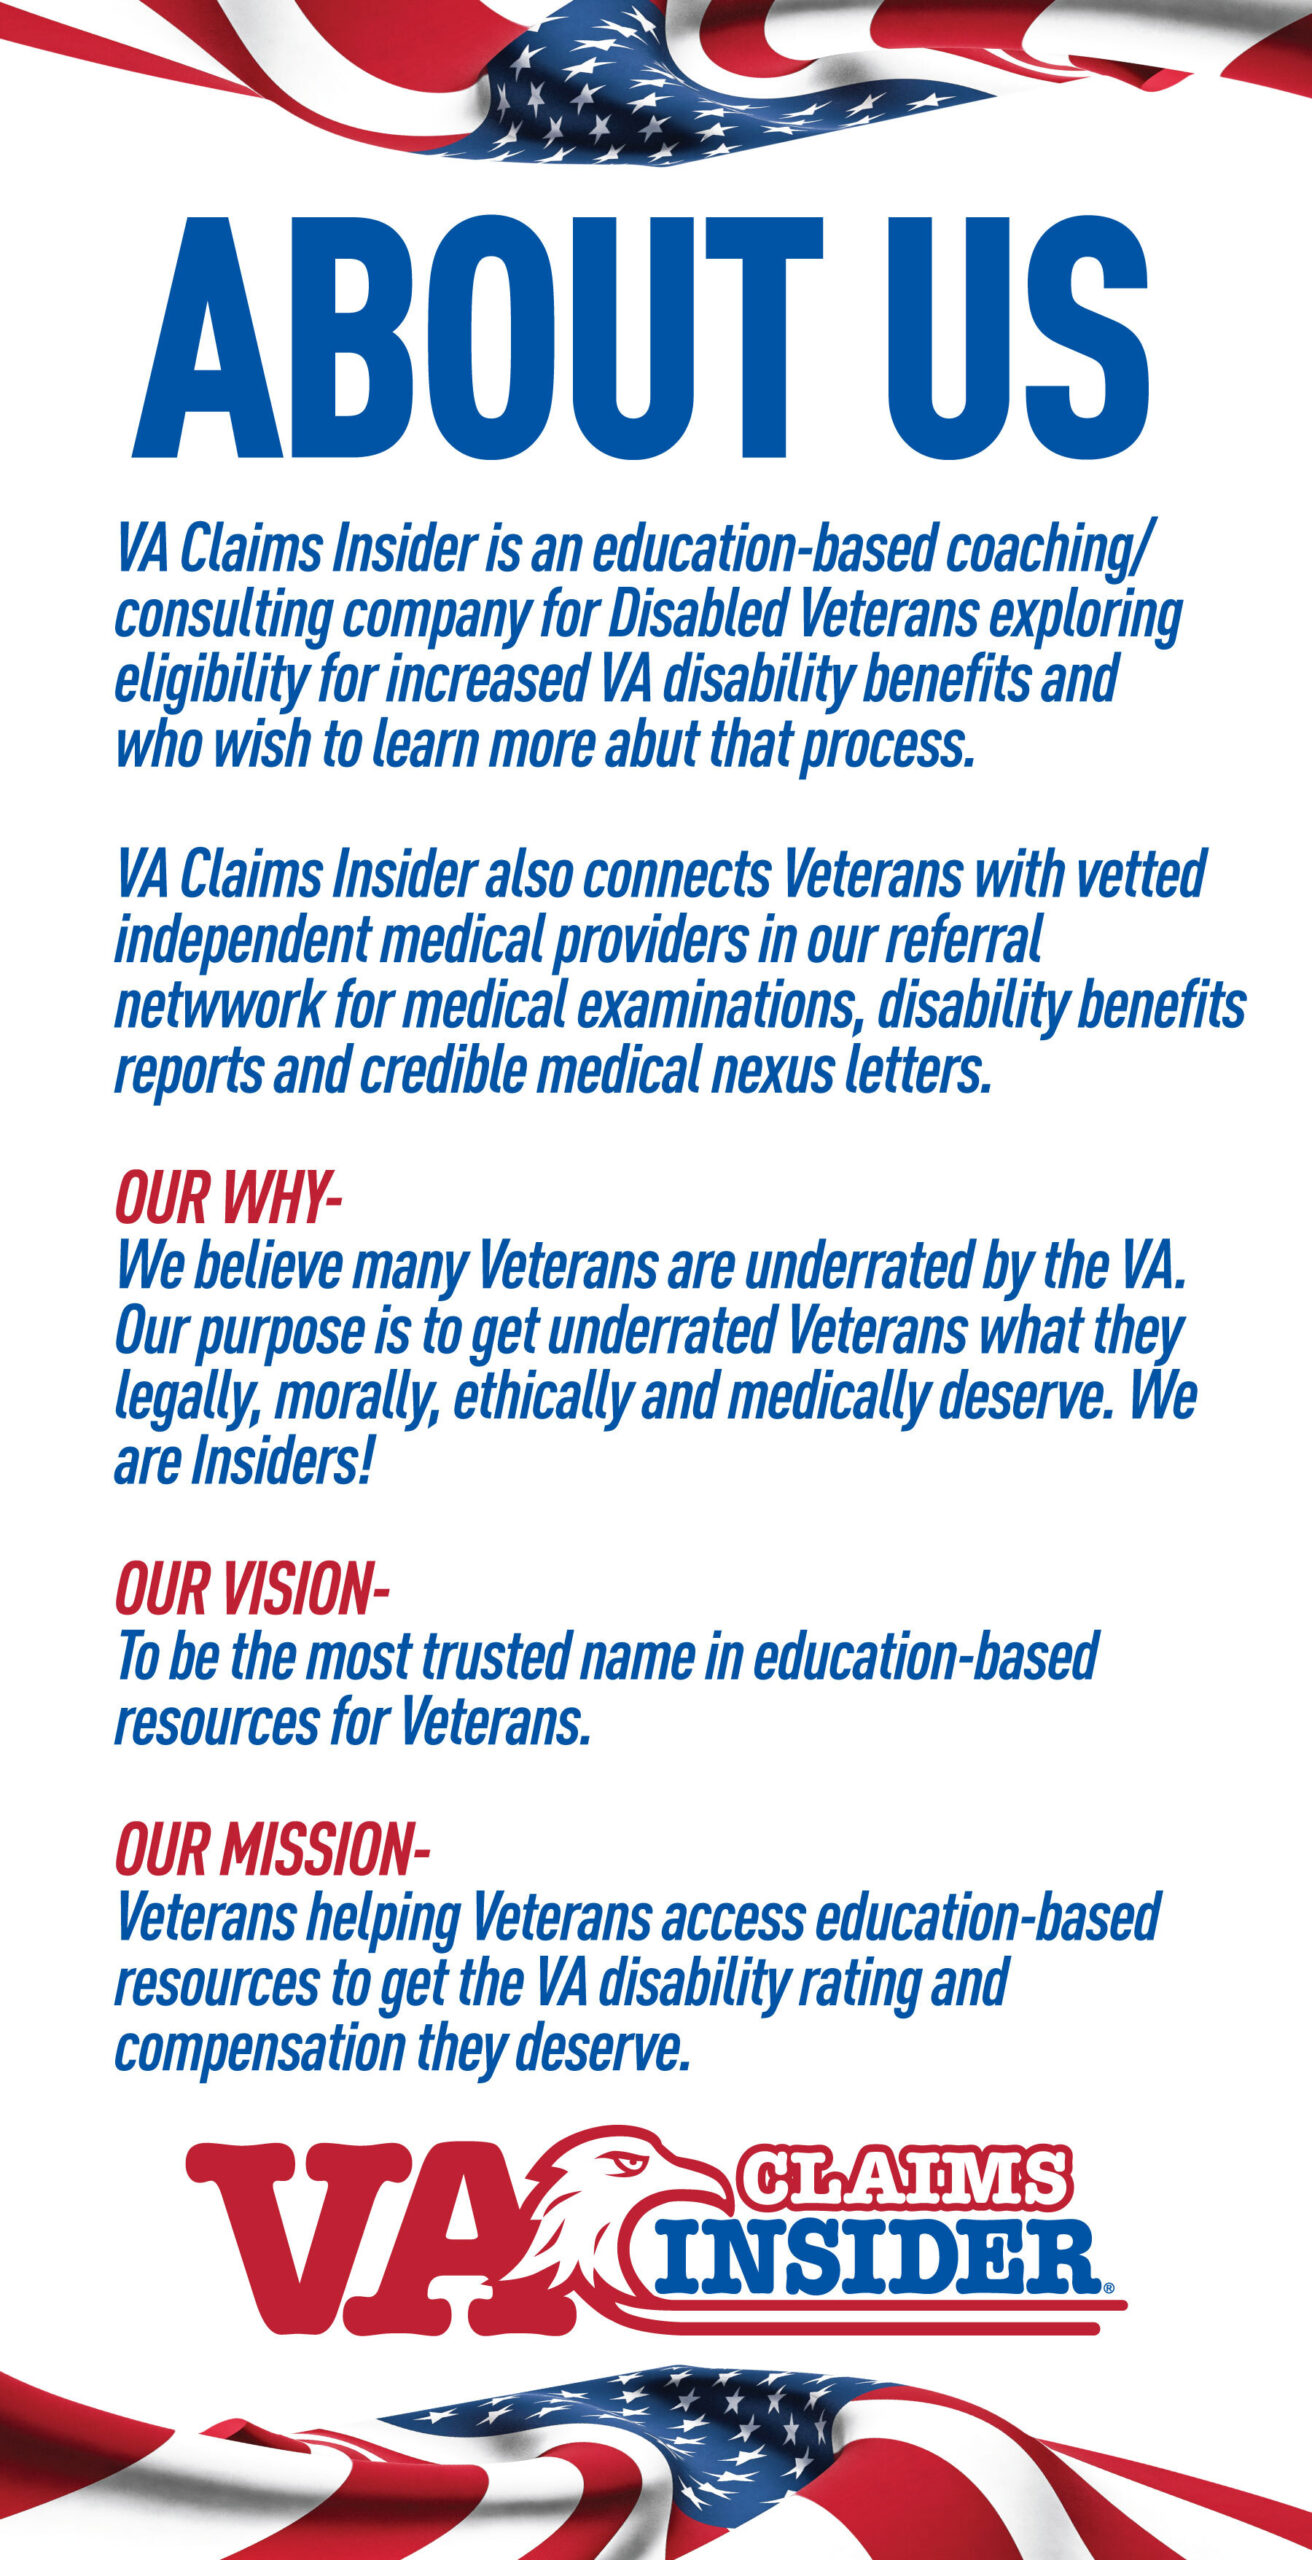 About VA Claims Insider